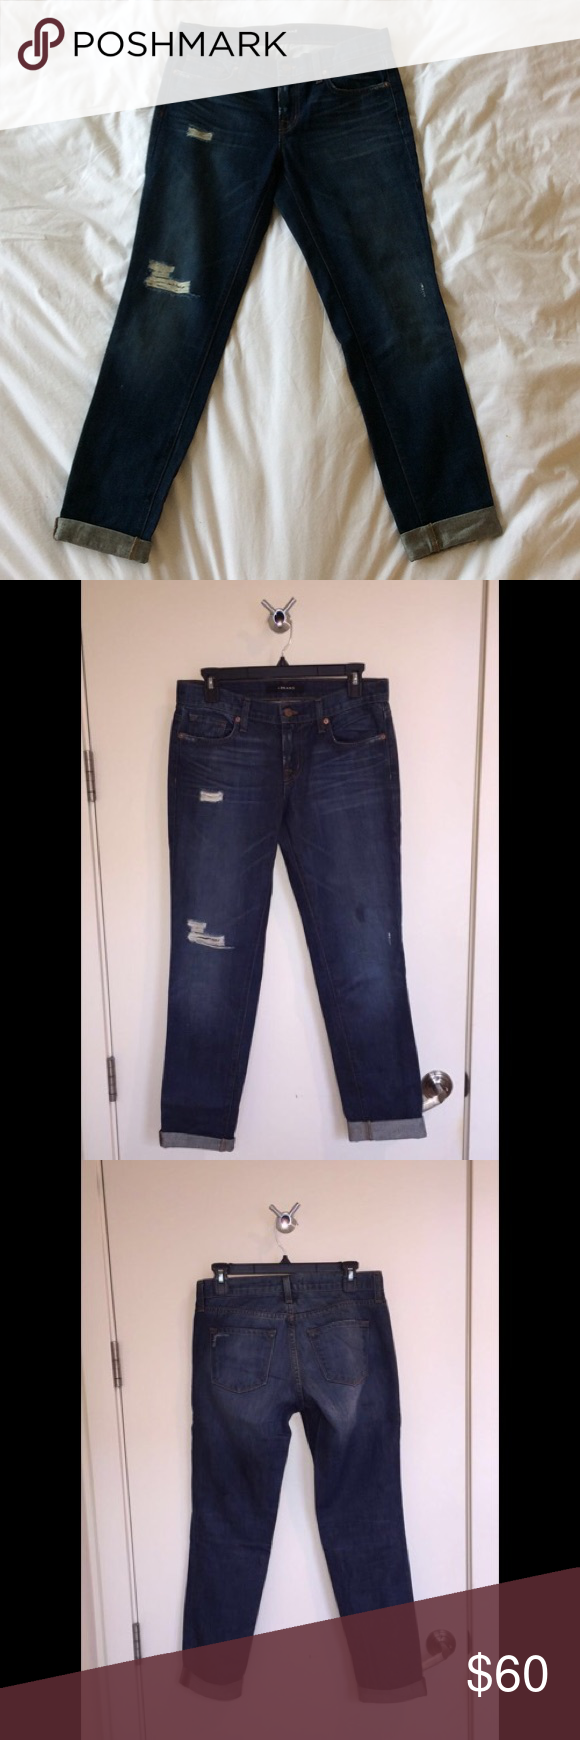 J Brand Distressed Boyfriend Jeans Aidan distressed boyfriend jeans. 100% cotton. Rips, tears, whiskers, and fading. Authentic vintage feel. Slouchy, straight-leg jeans. Worn once, like-new condition. Size 25, runs large. J Brand Jeans Boyfriend